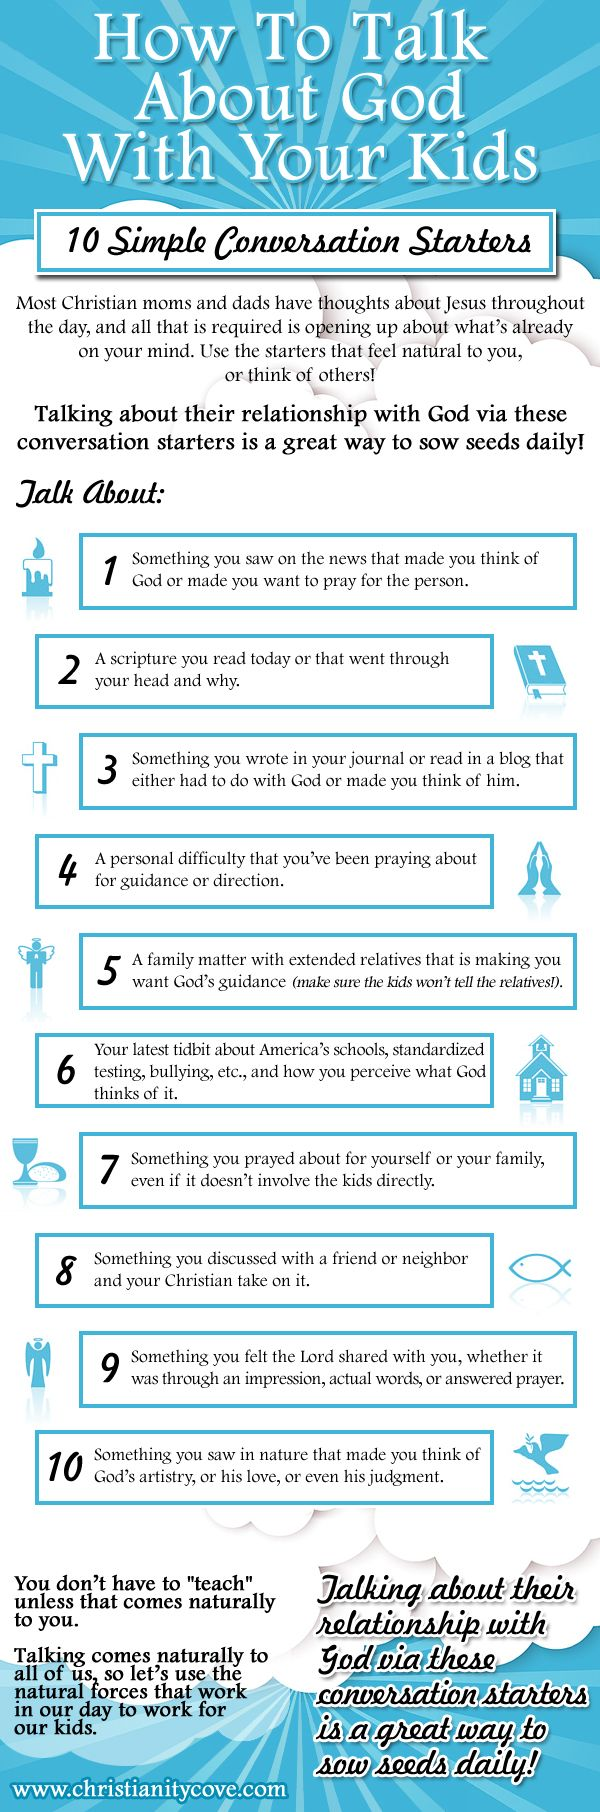 How to Talk About God With Your Kids